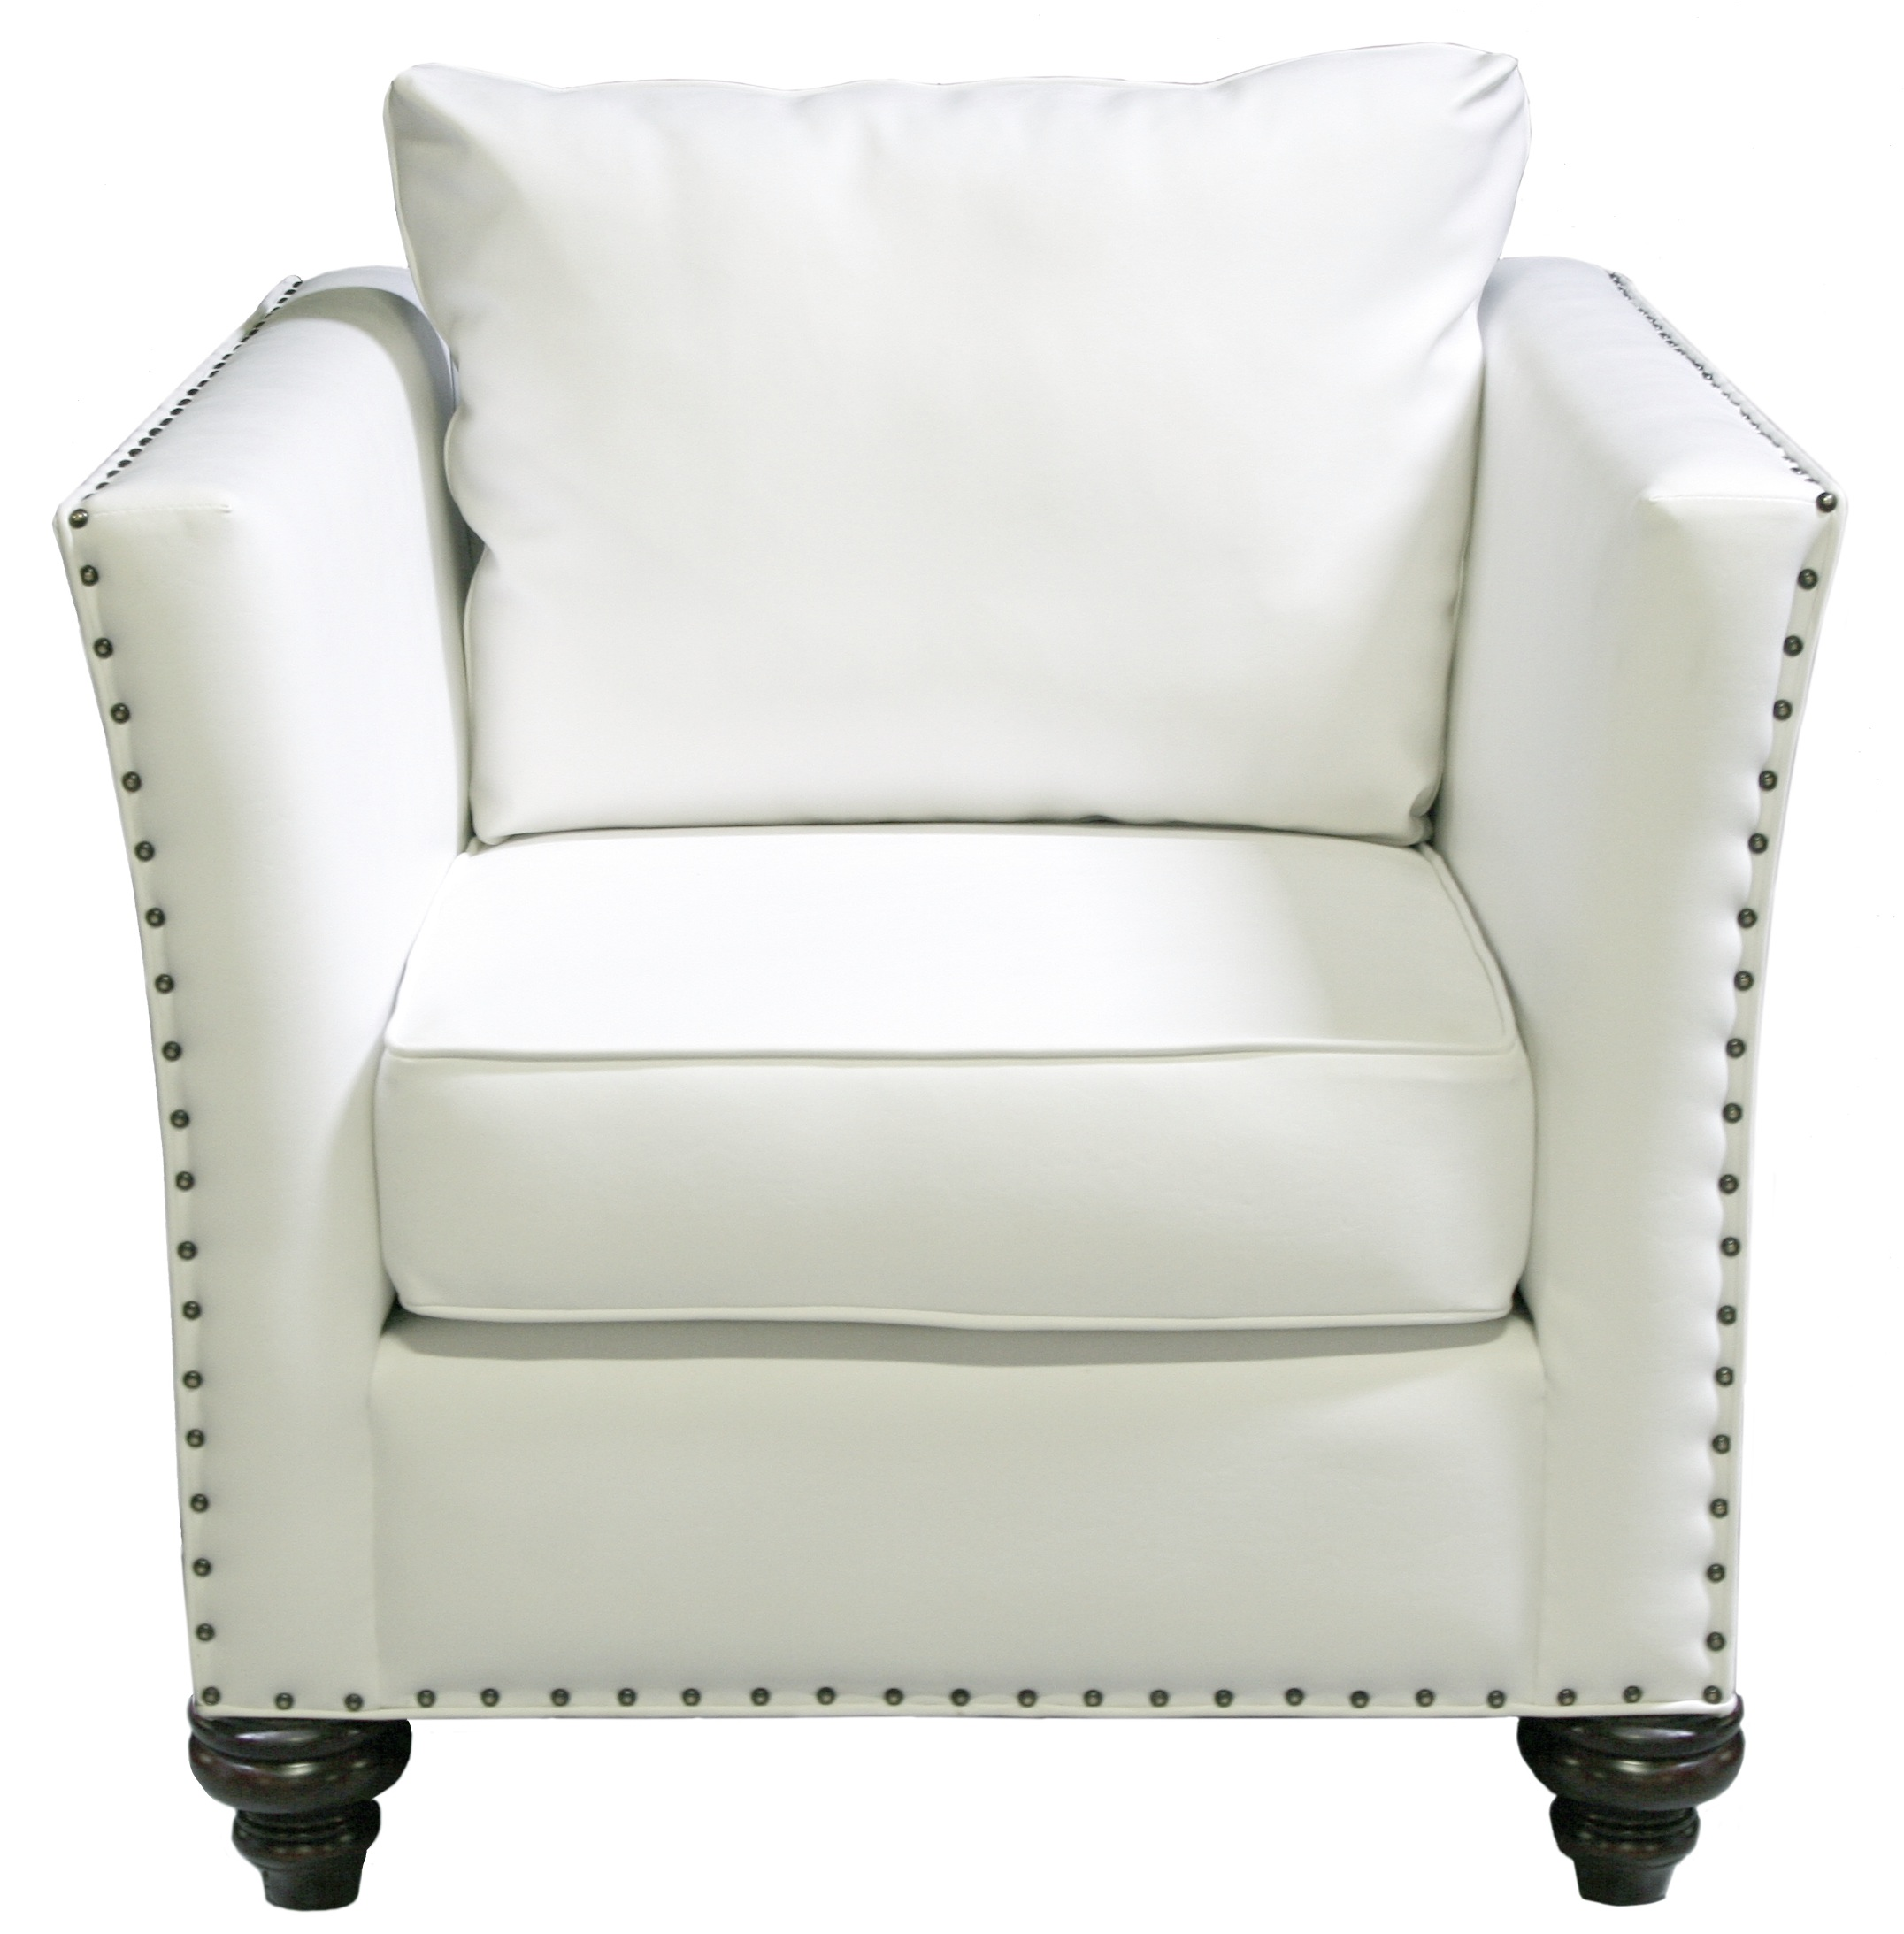 White Leather Chairs Nailhead Chair White Leather Designer8